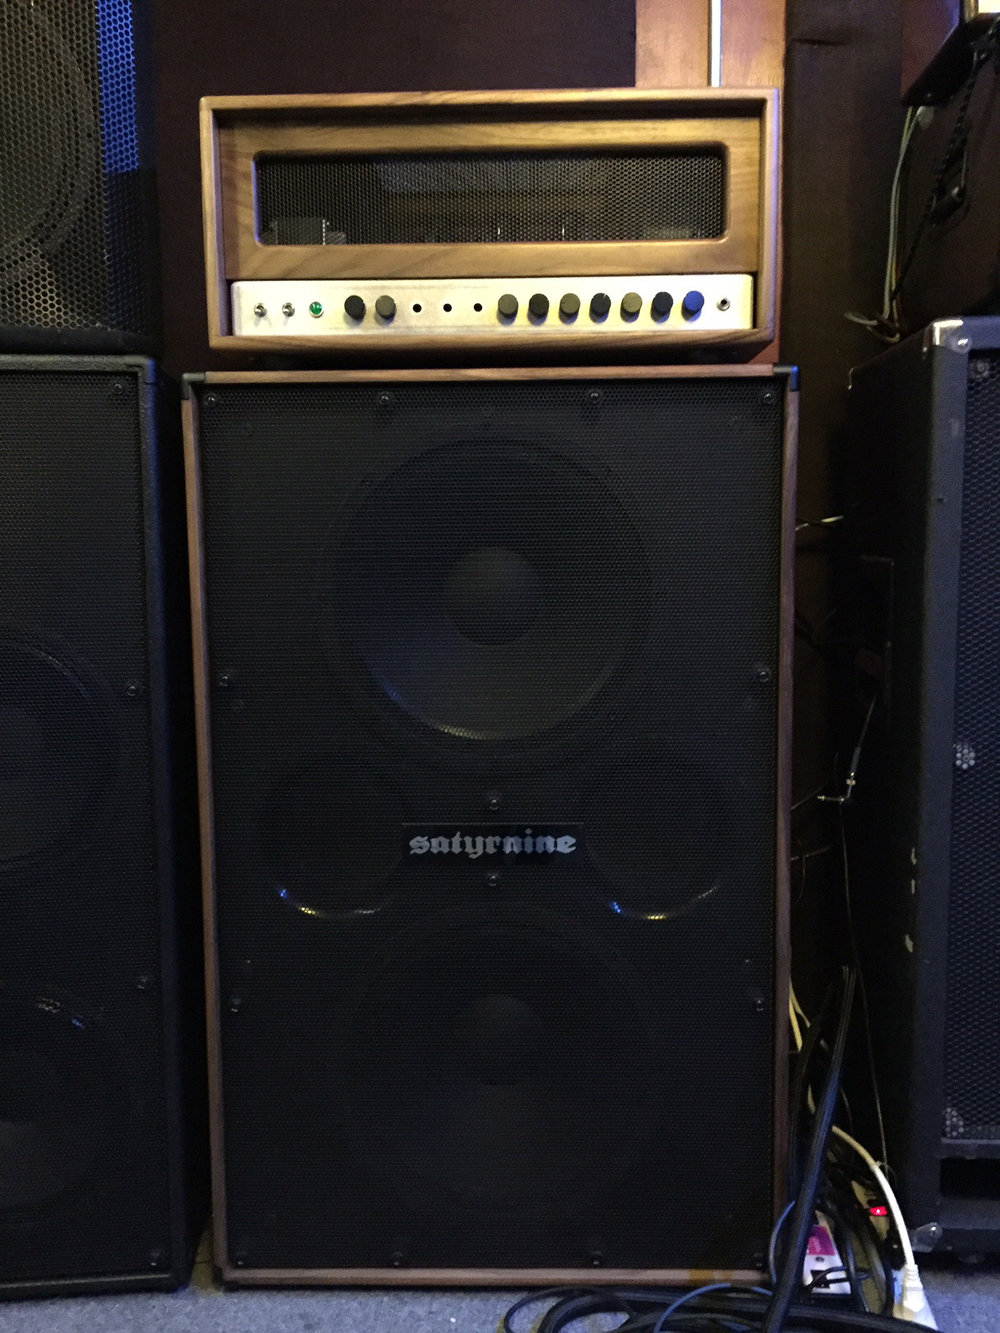 Satyrnine Walnut 215 - Faital 15PR400's. Frantzen 400 Bass head on top.